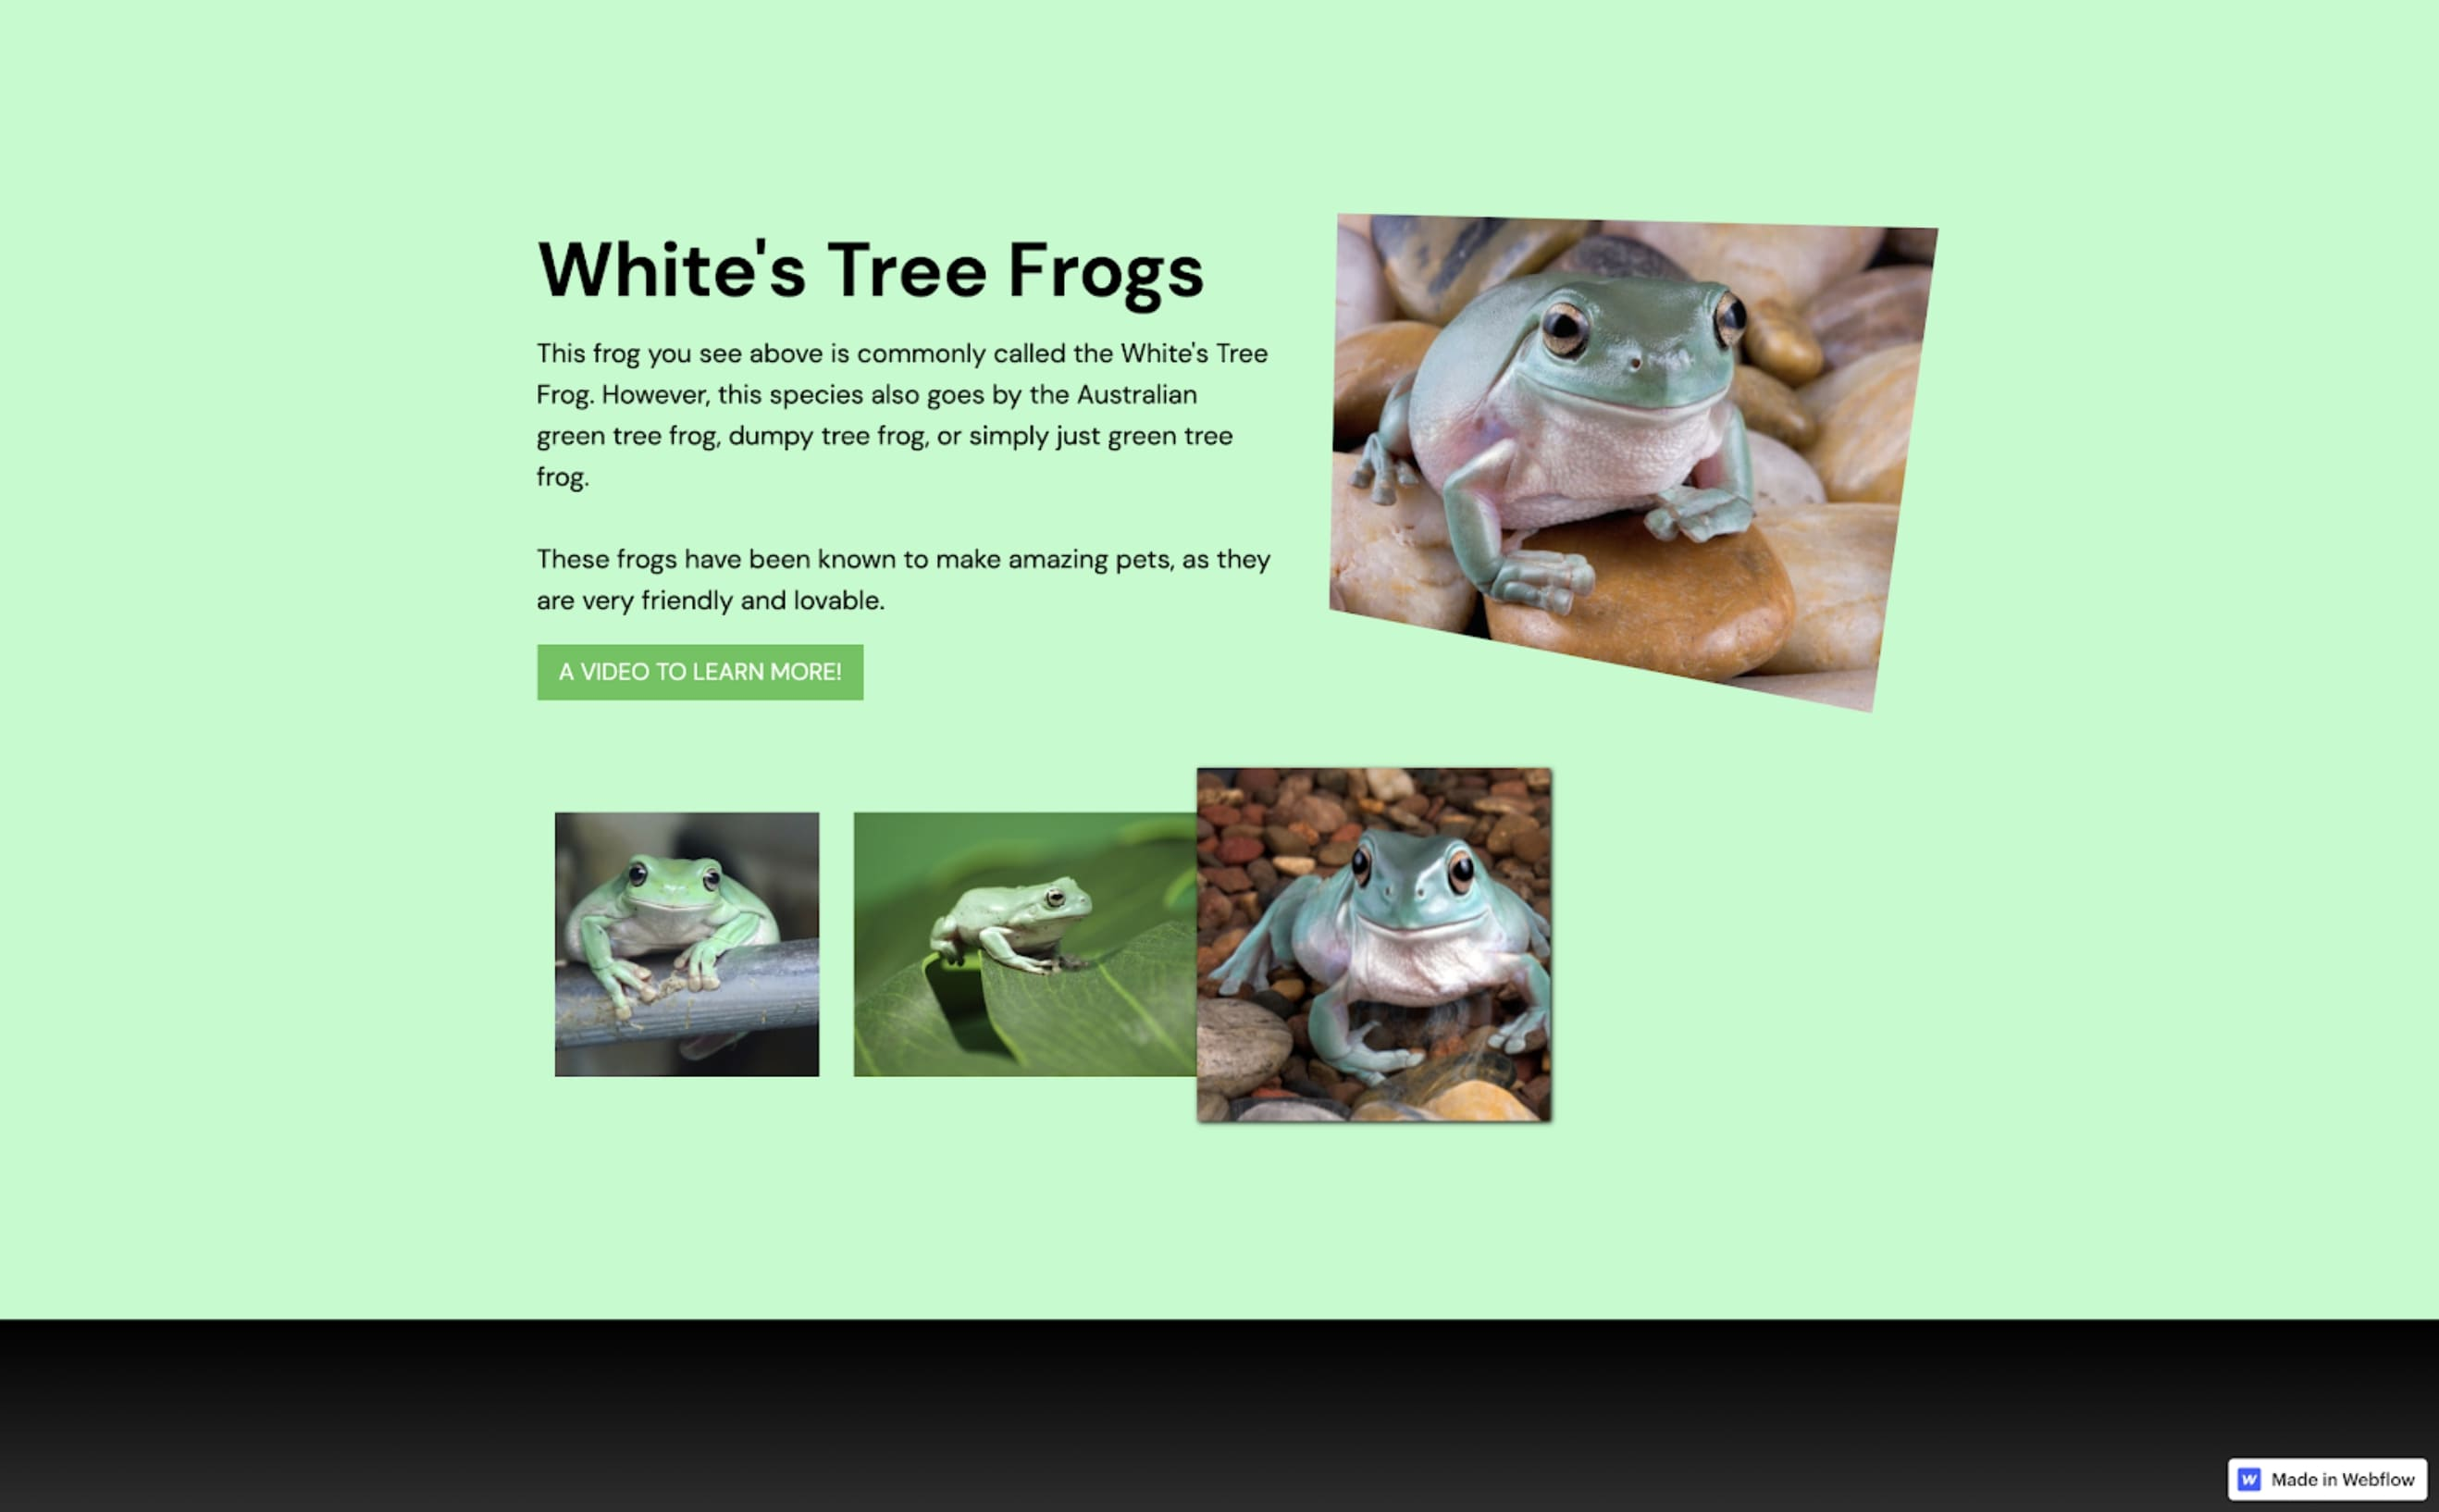 Example No Code Camp project of website with gallery and info about frogs